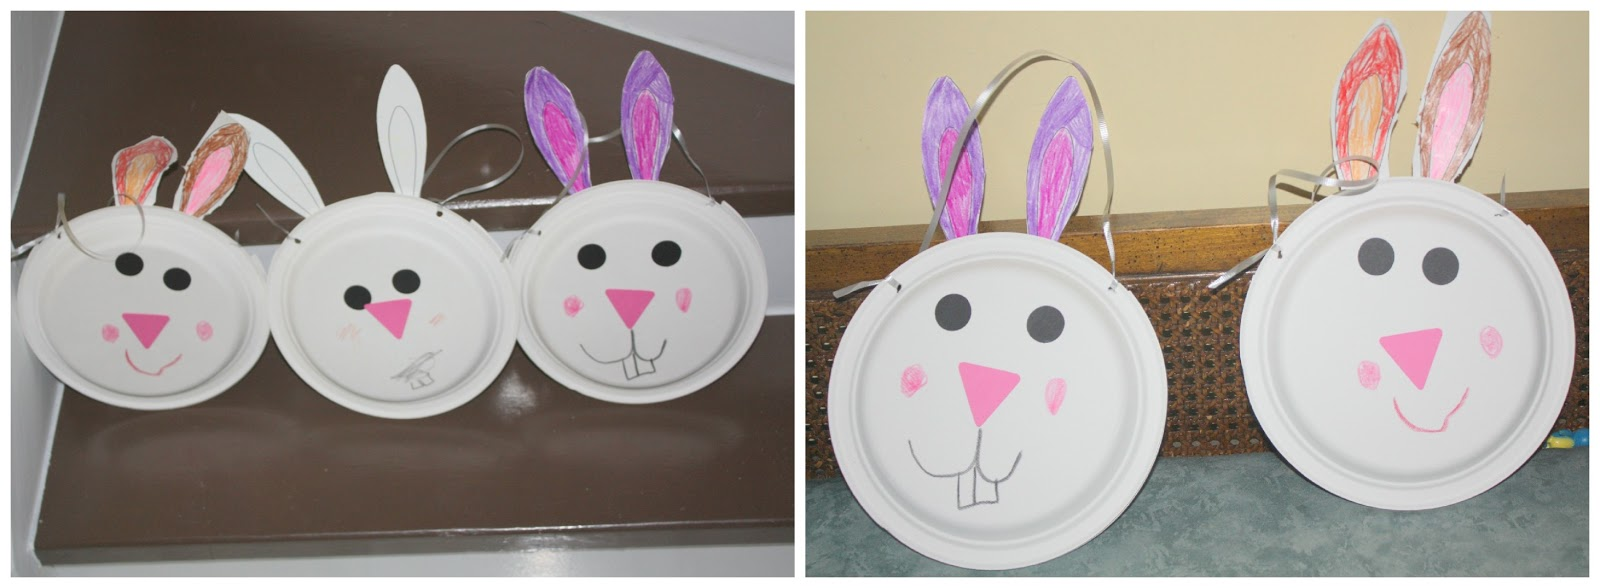 Easy easter bunny crafts - Easy Easter Bunny Crafts 57